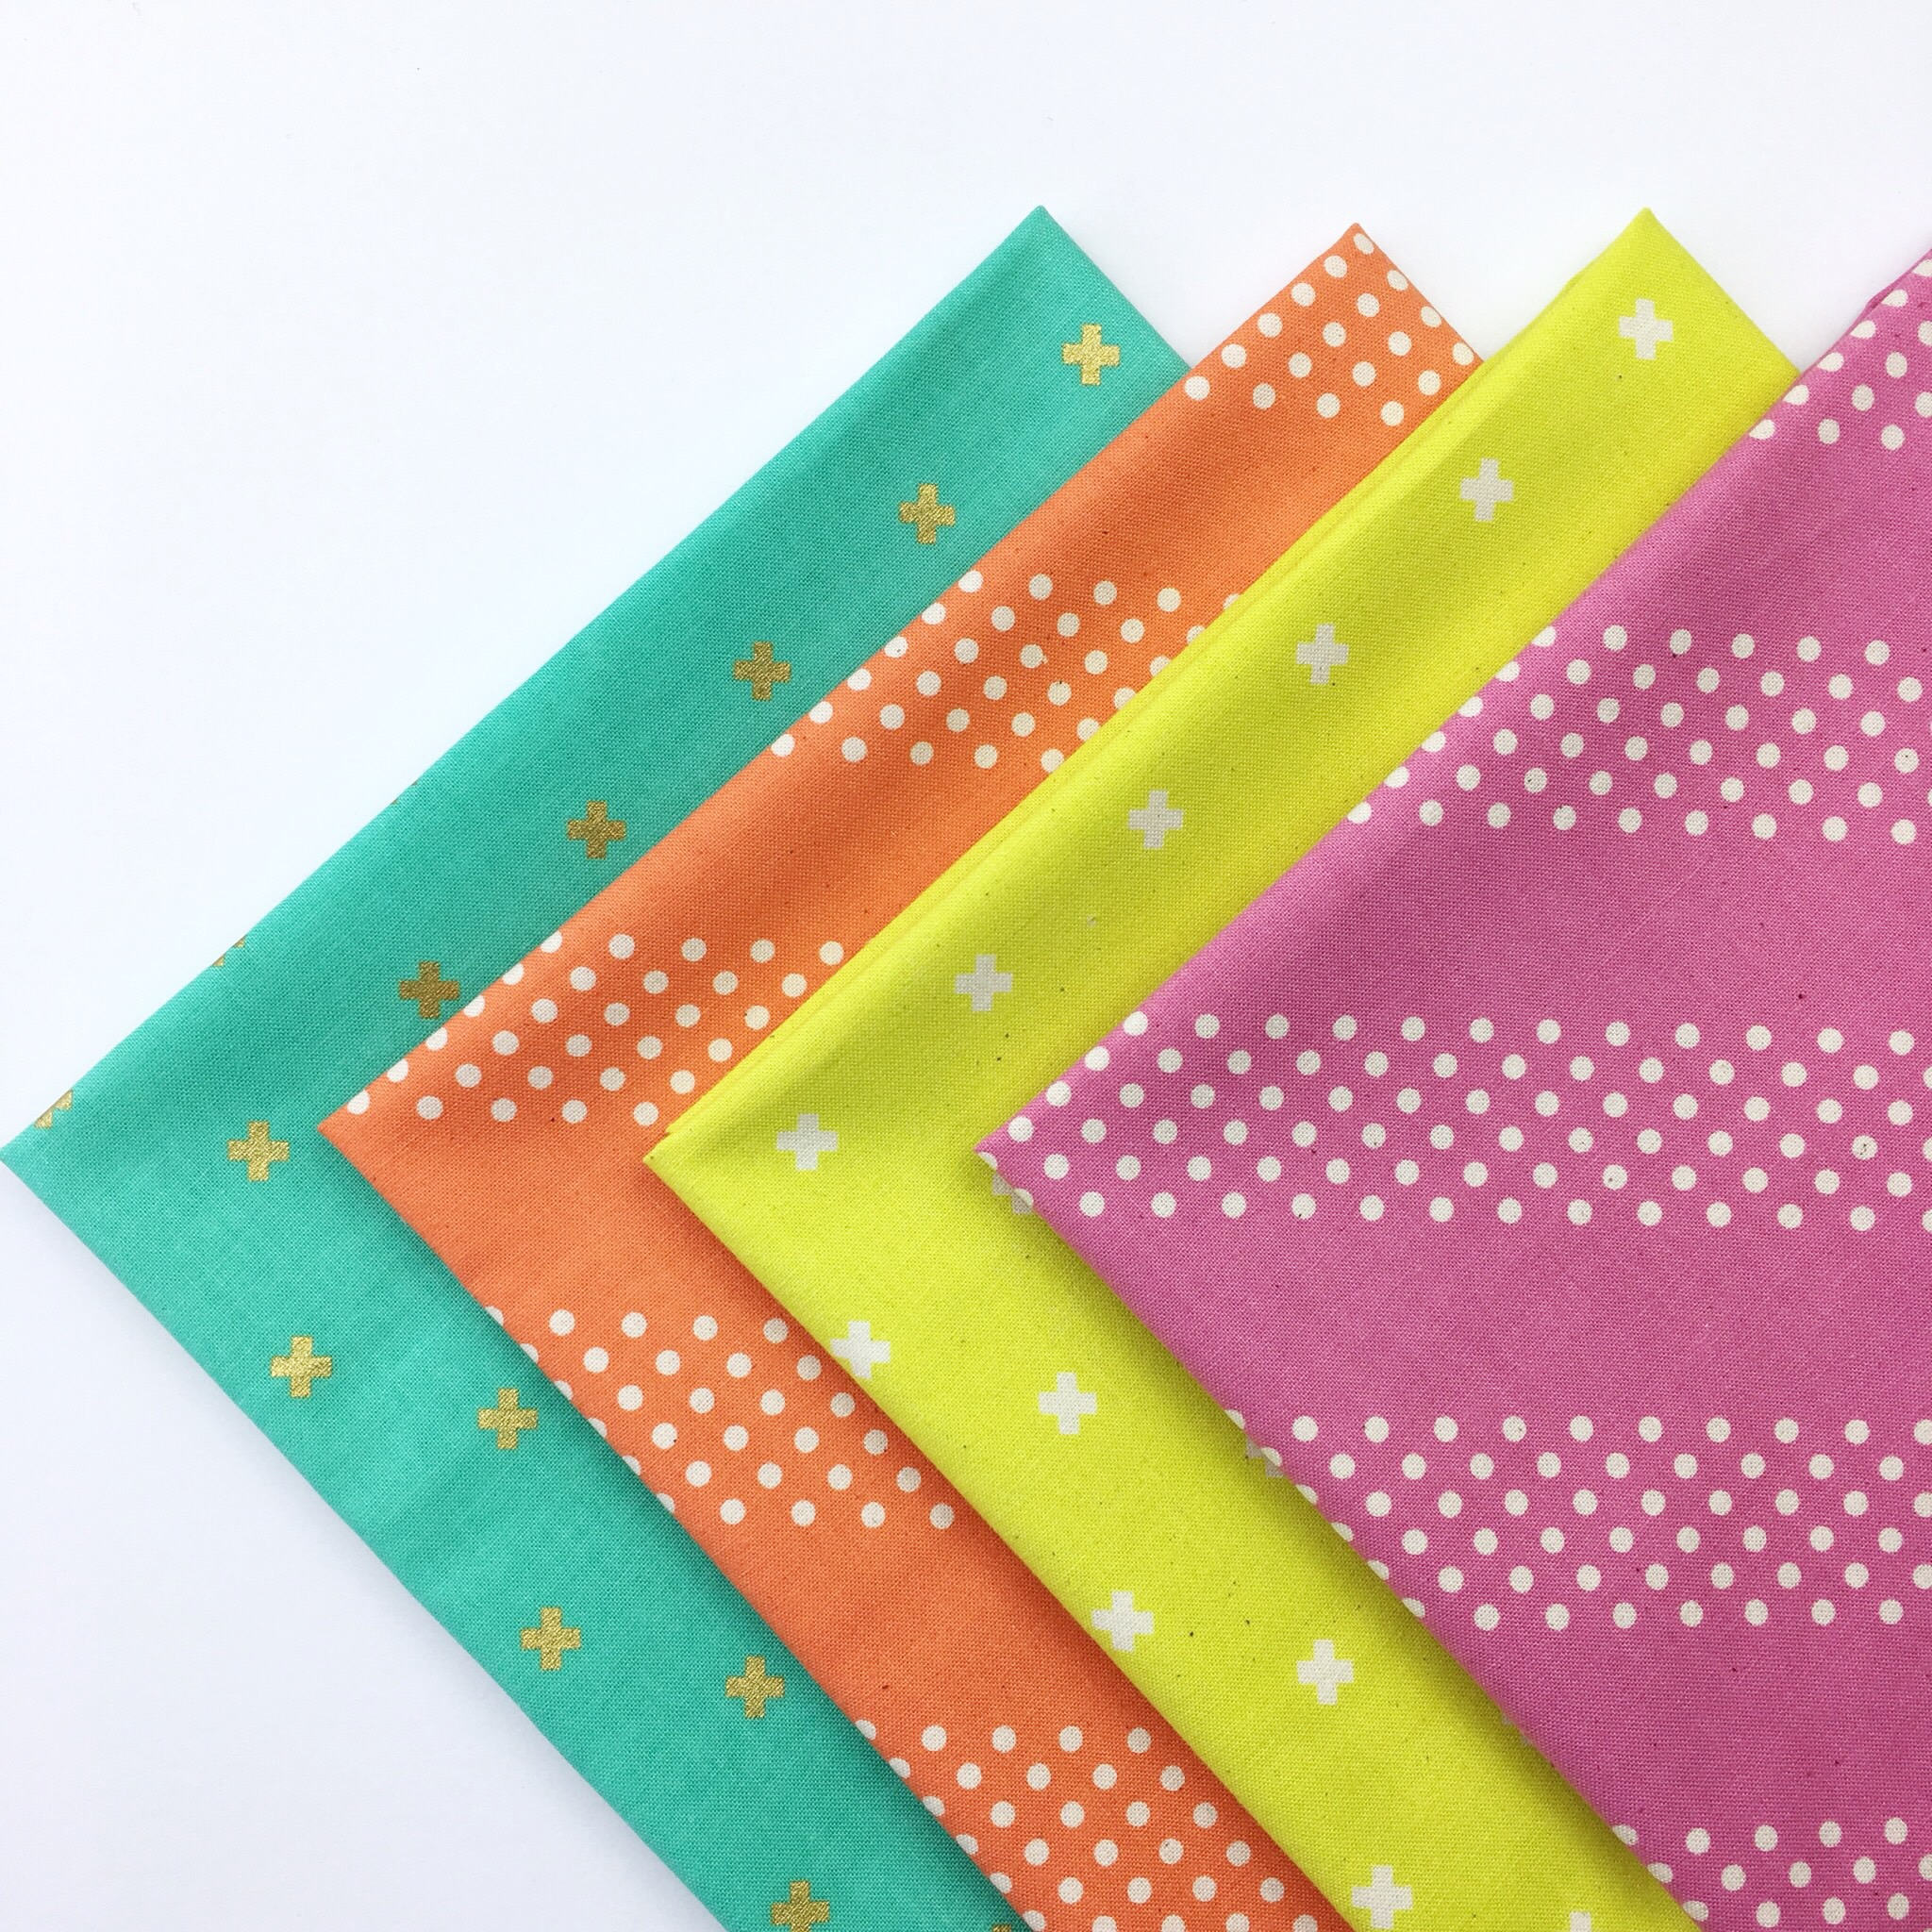 Fat Quarter Bundles at The Fabric Fox